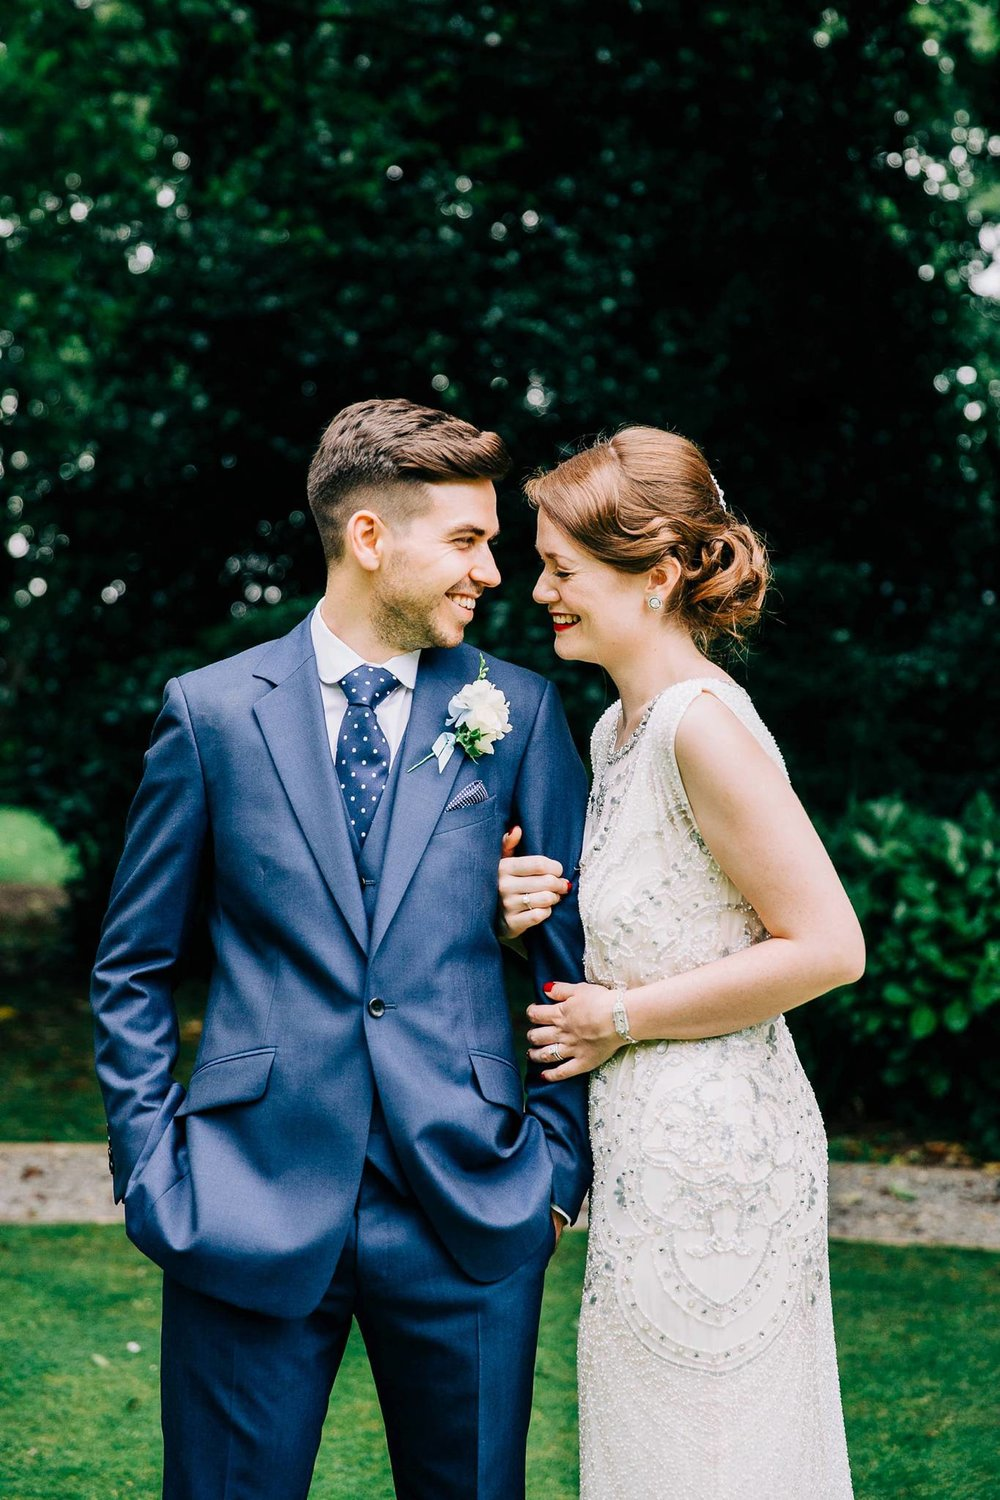 Natural wedding photography Manchester - Clare Robinson Photography_0006.jpg